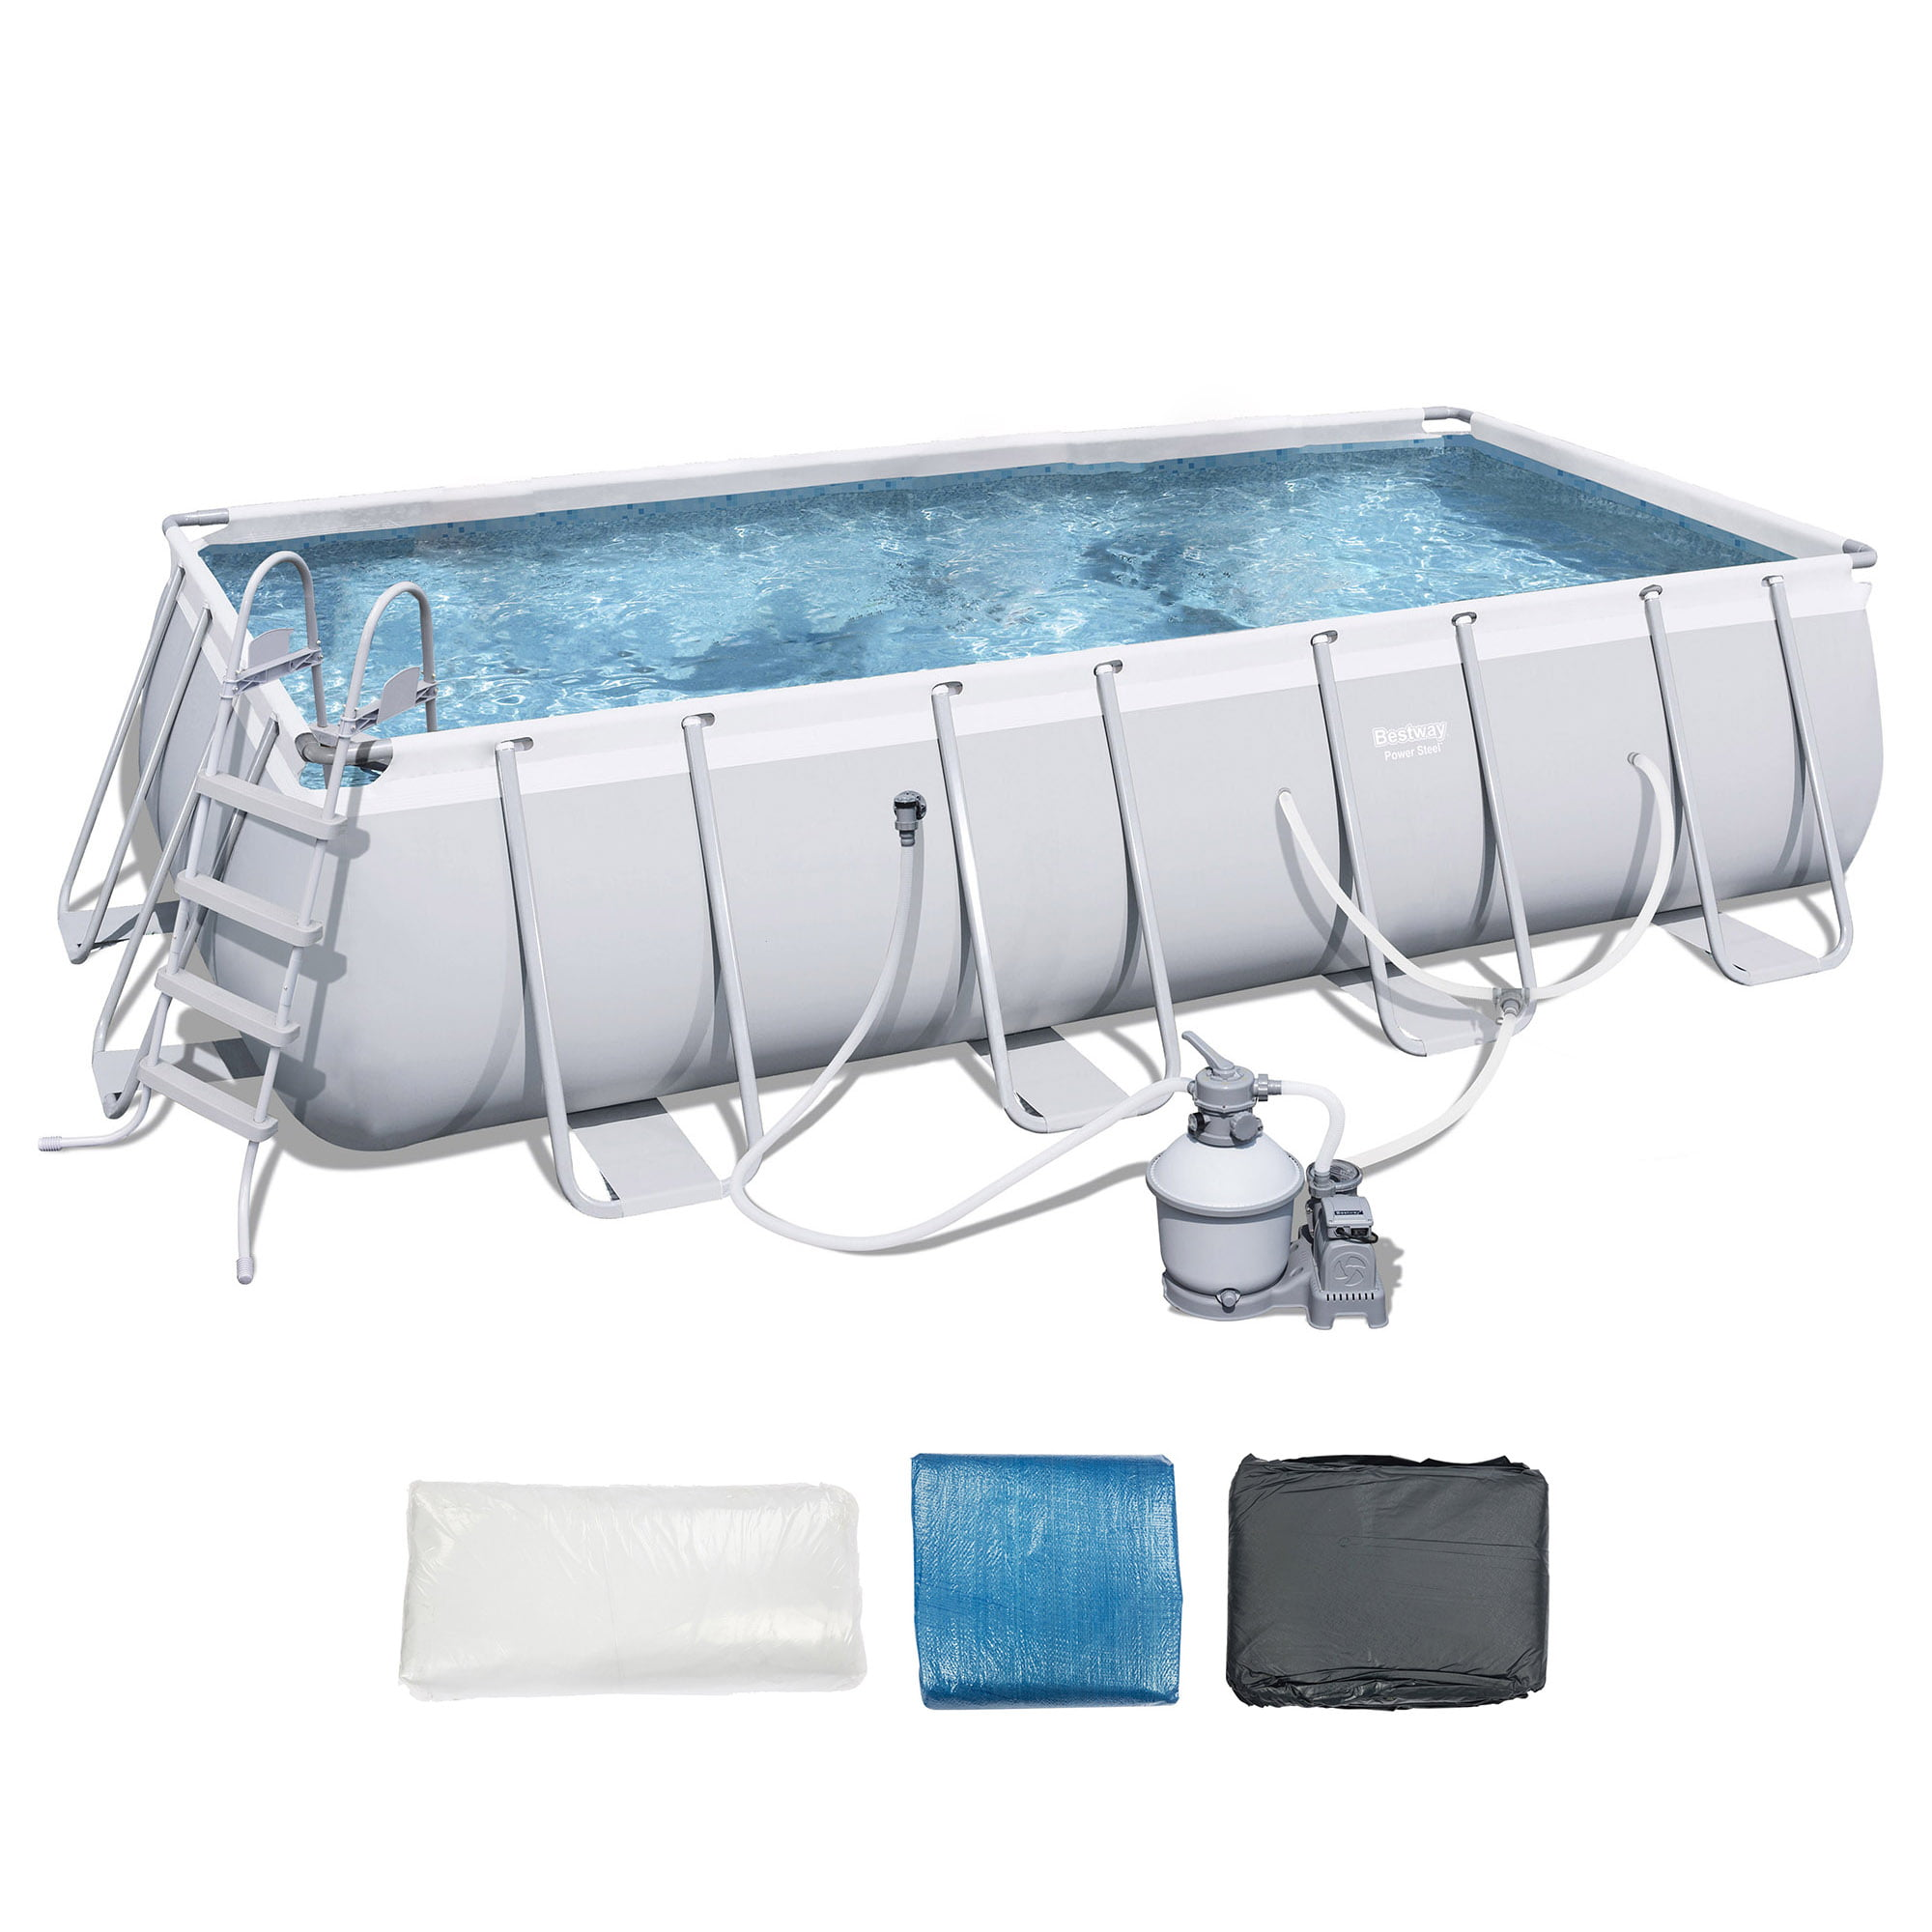 "Bestway 18'x9'x48"" Rectangular Frame Above Ground Pool Set with Ladder & Pump by Bestway"